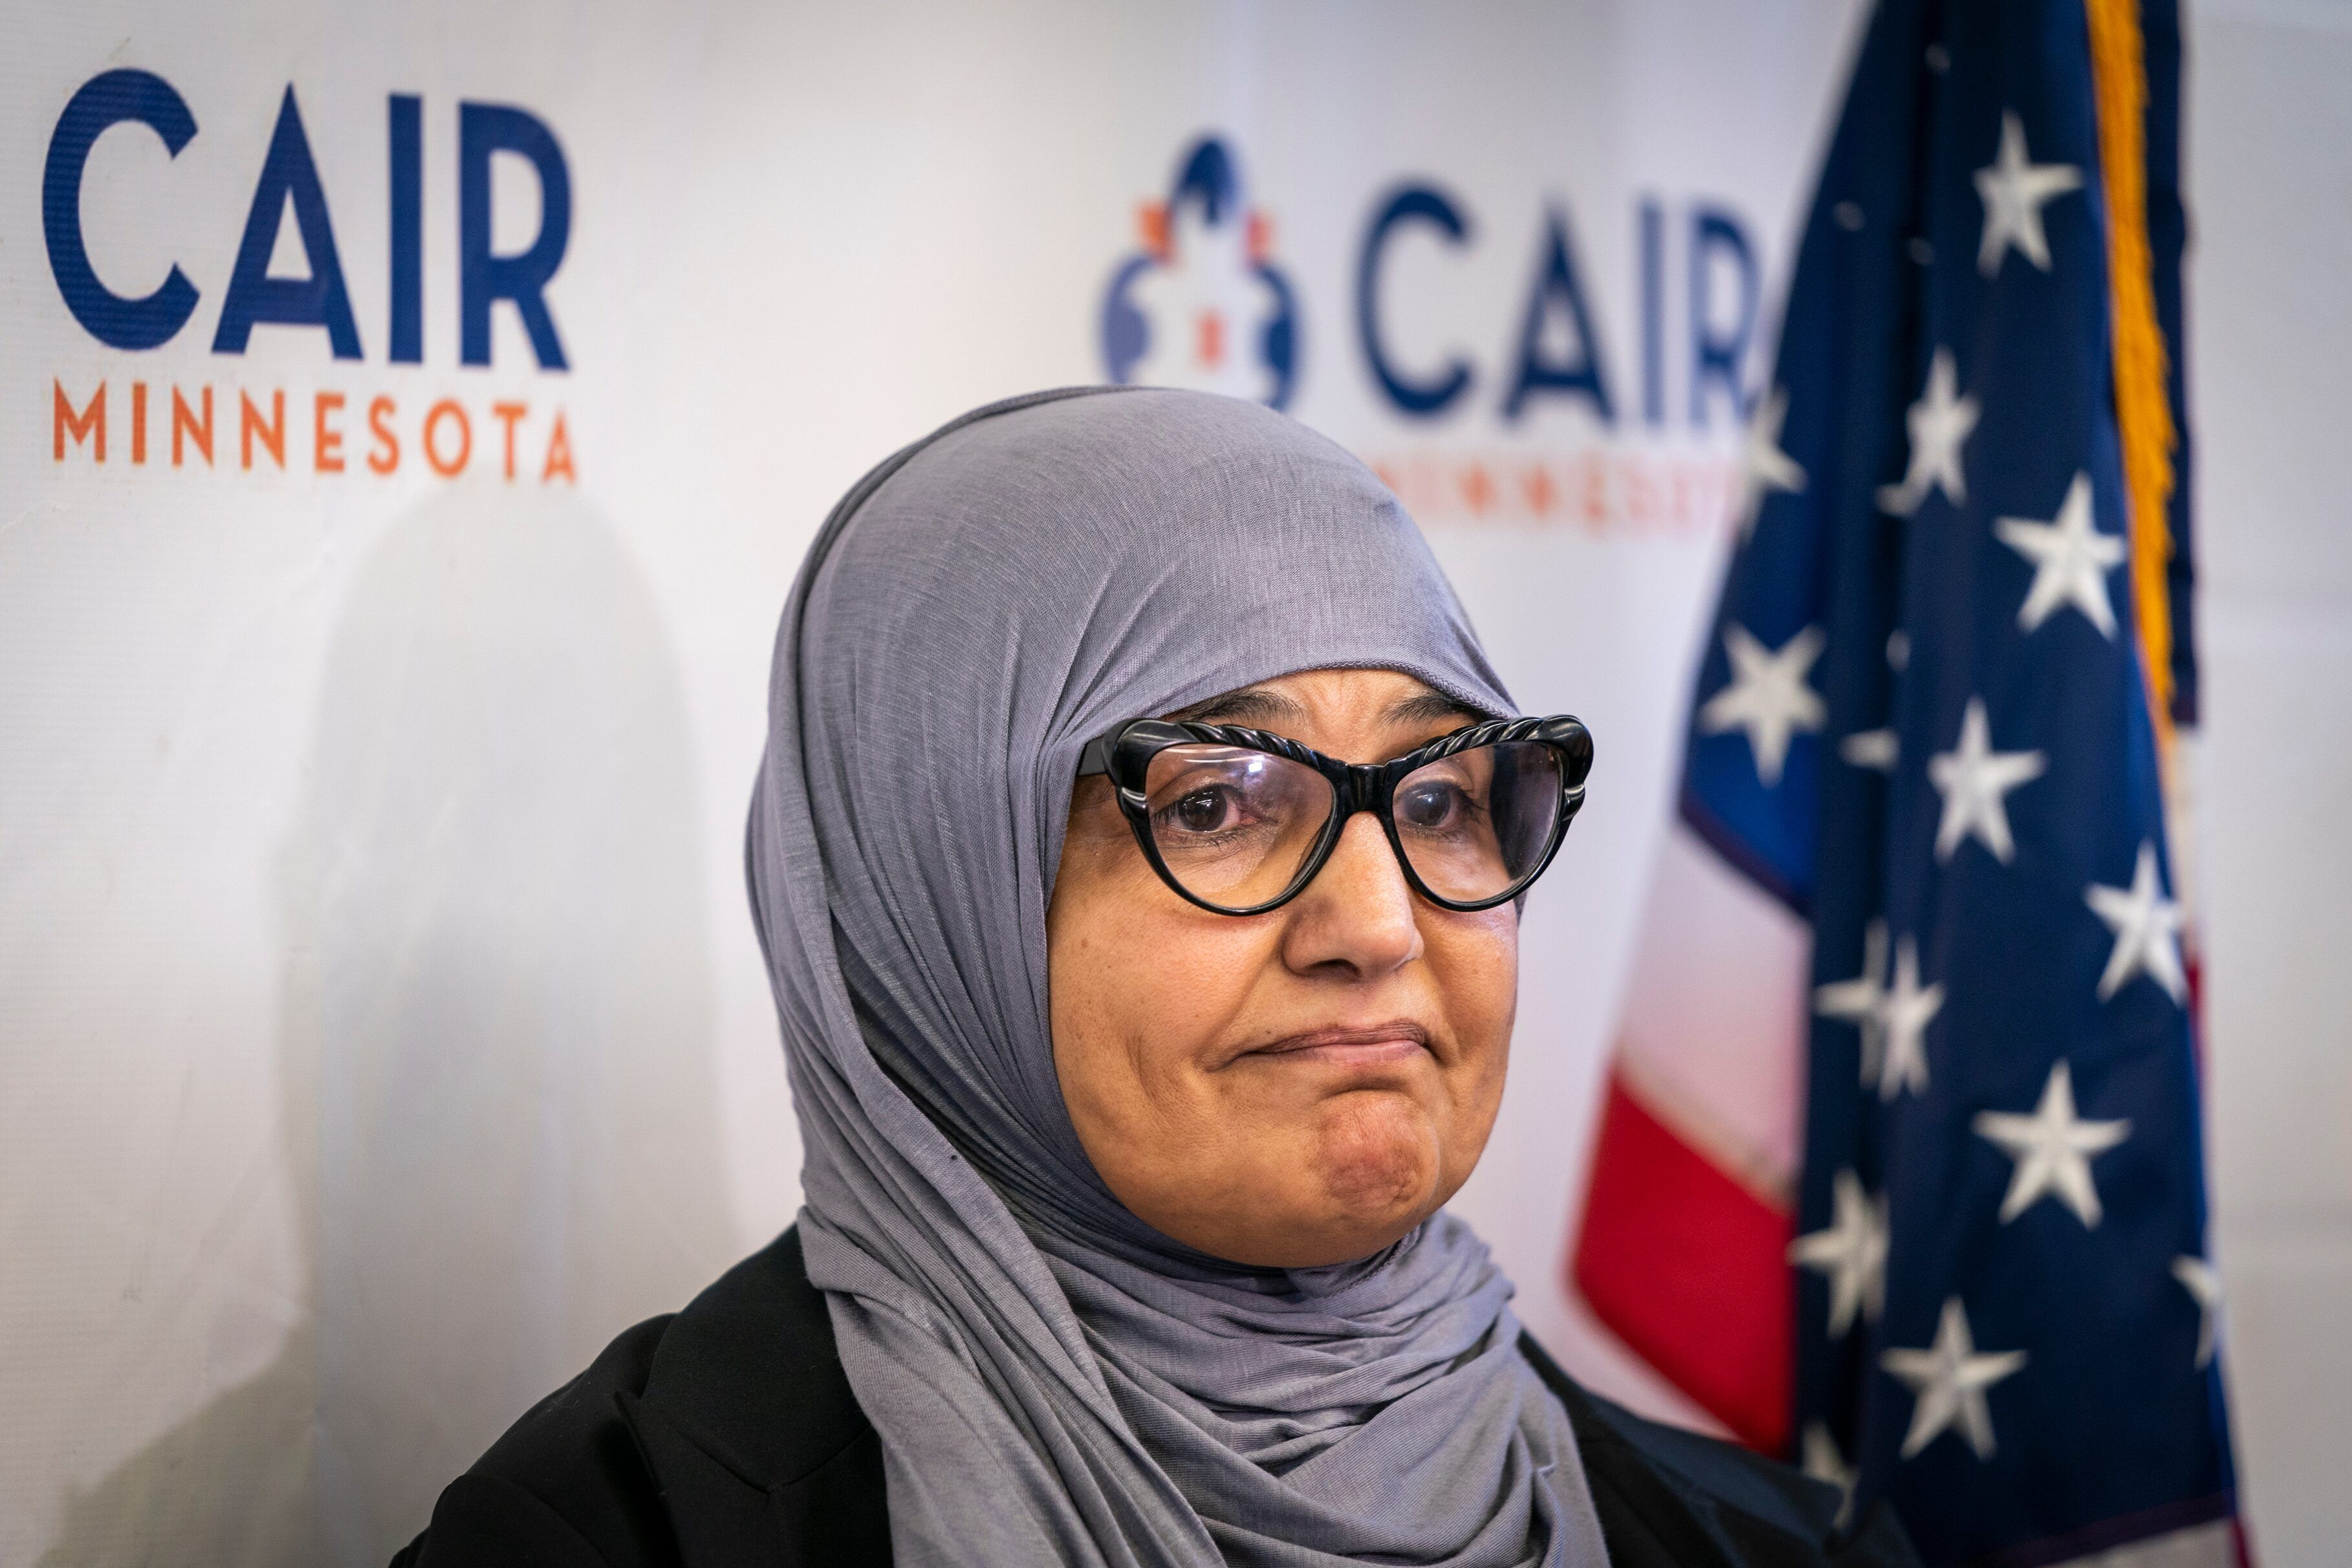 FOX NEWS Minnesota Muslim woman gets 120G settlement